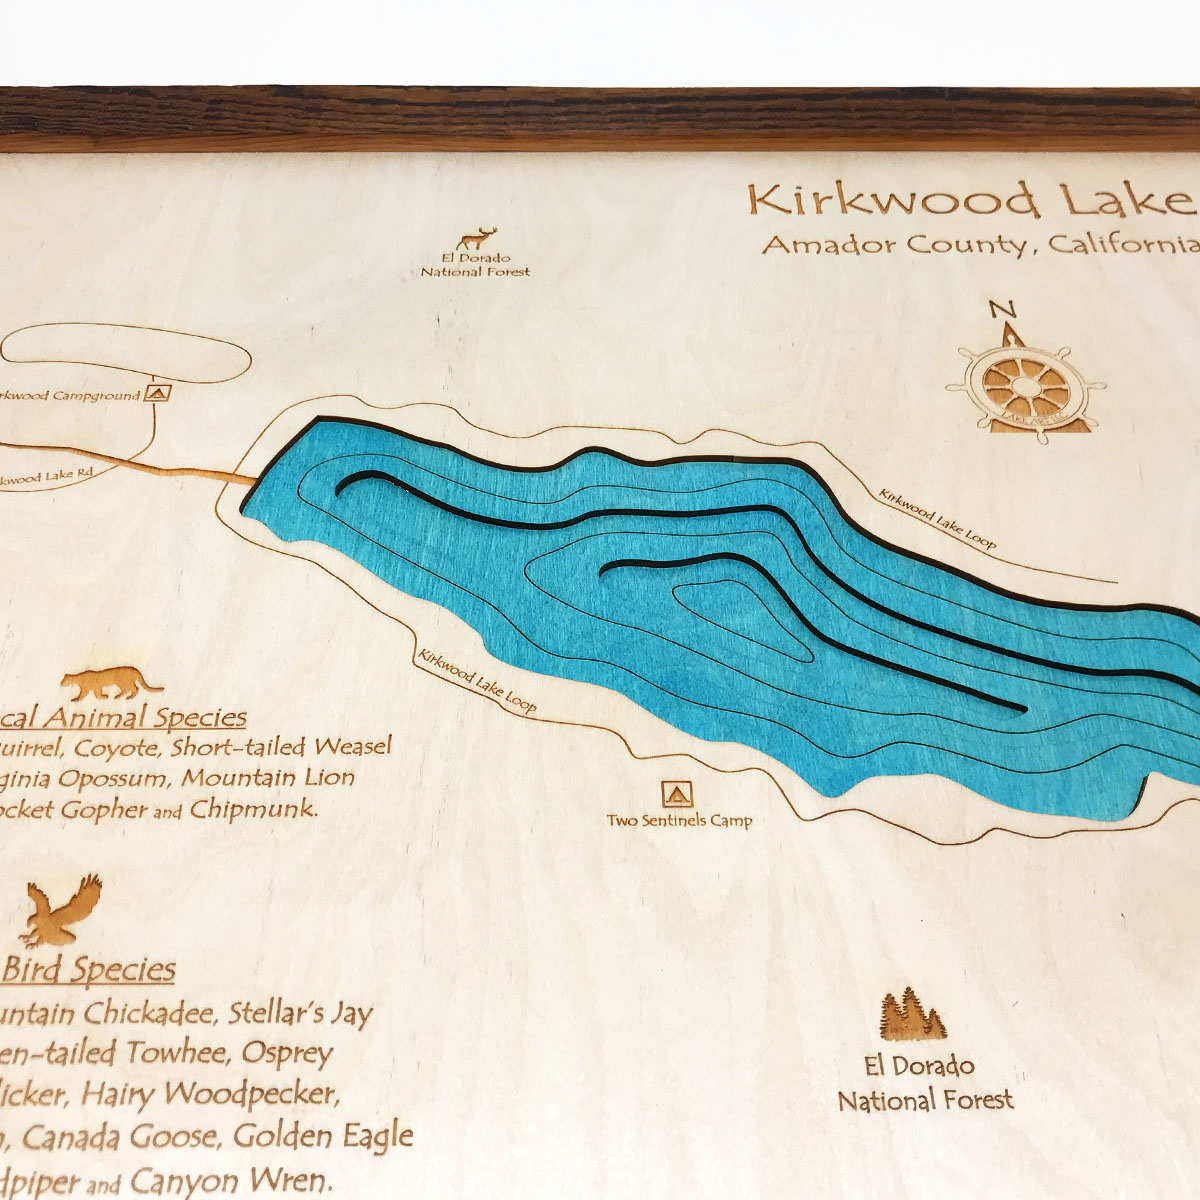 wood lake dating site In hot spring county, nestled among the natural beauty of the ouachita mountains is 1,940-acre lake catherine, one of the five popular diamond lakes in west central arkansas.